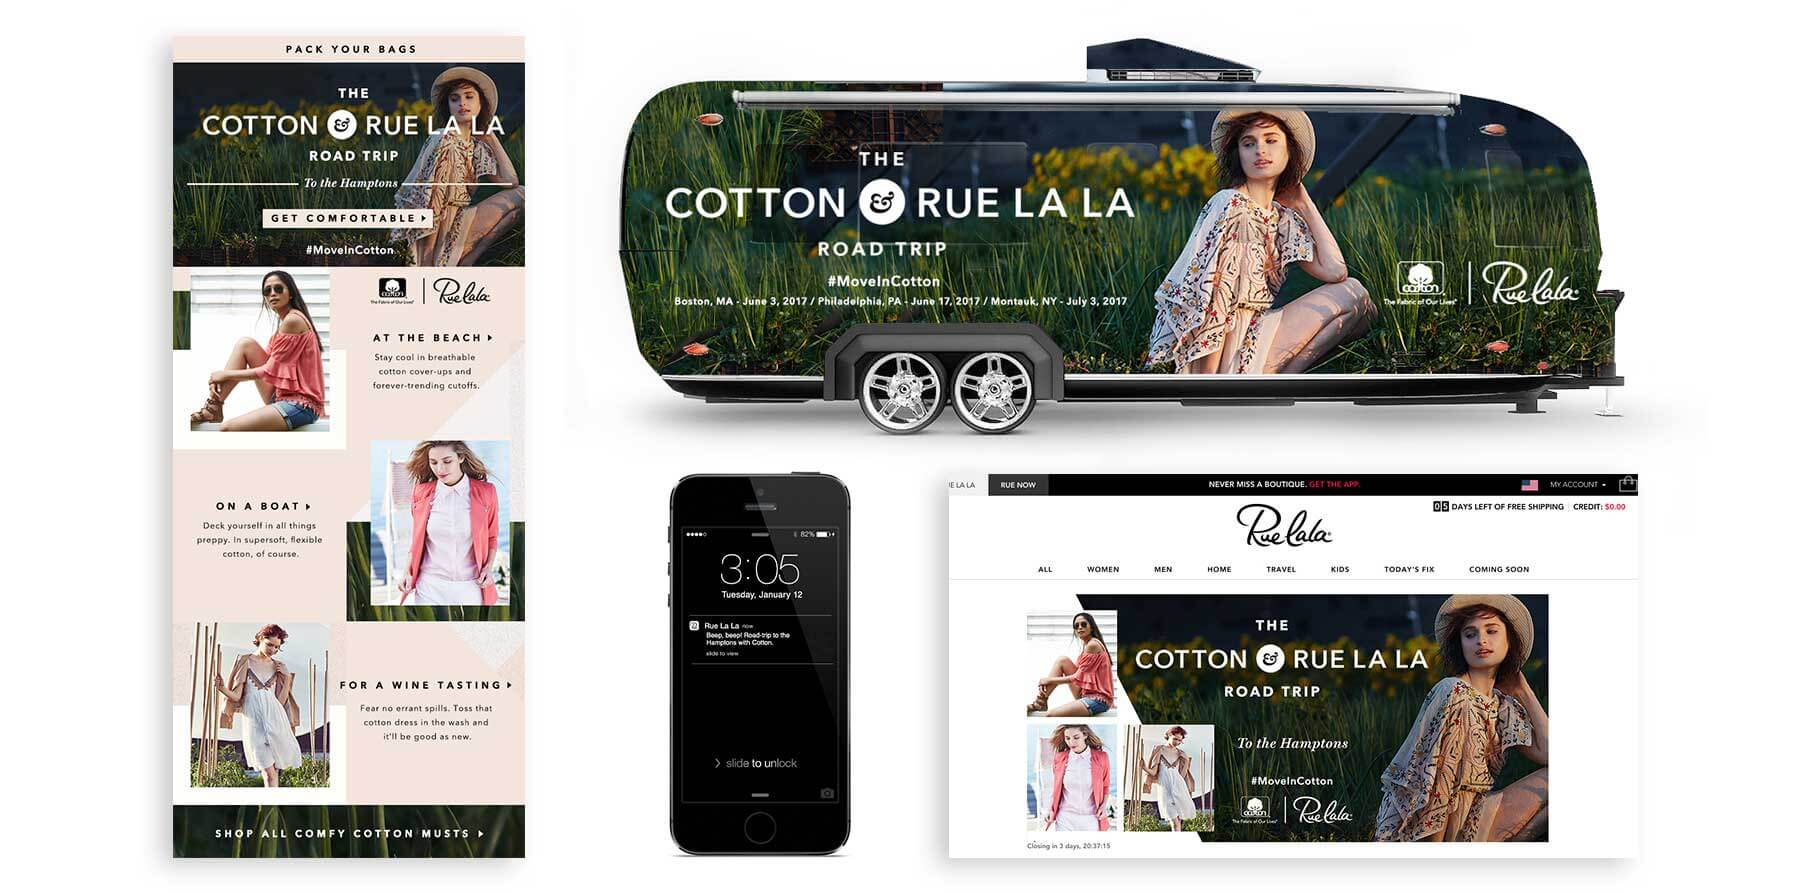 concept-ruelala-cotton-campaign-graphic-design-design-art-artist-partnership-collaboration-laura-vanessa-gonzalez-lvg-lvgdesigns-art-director-1.jpg